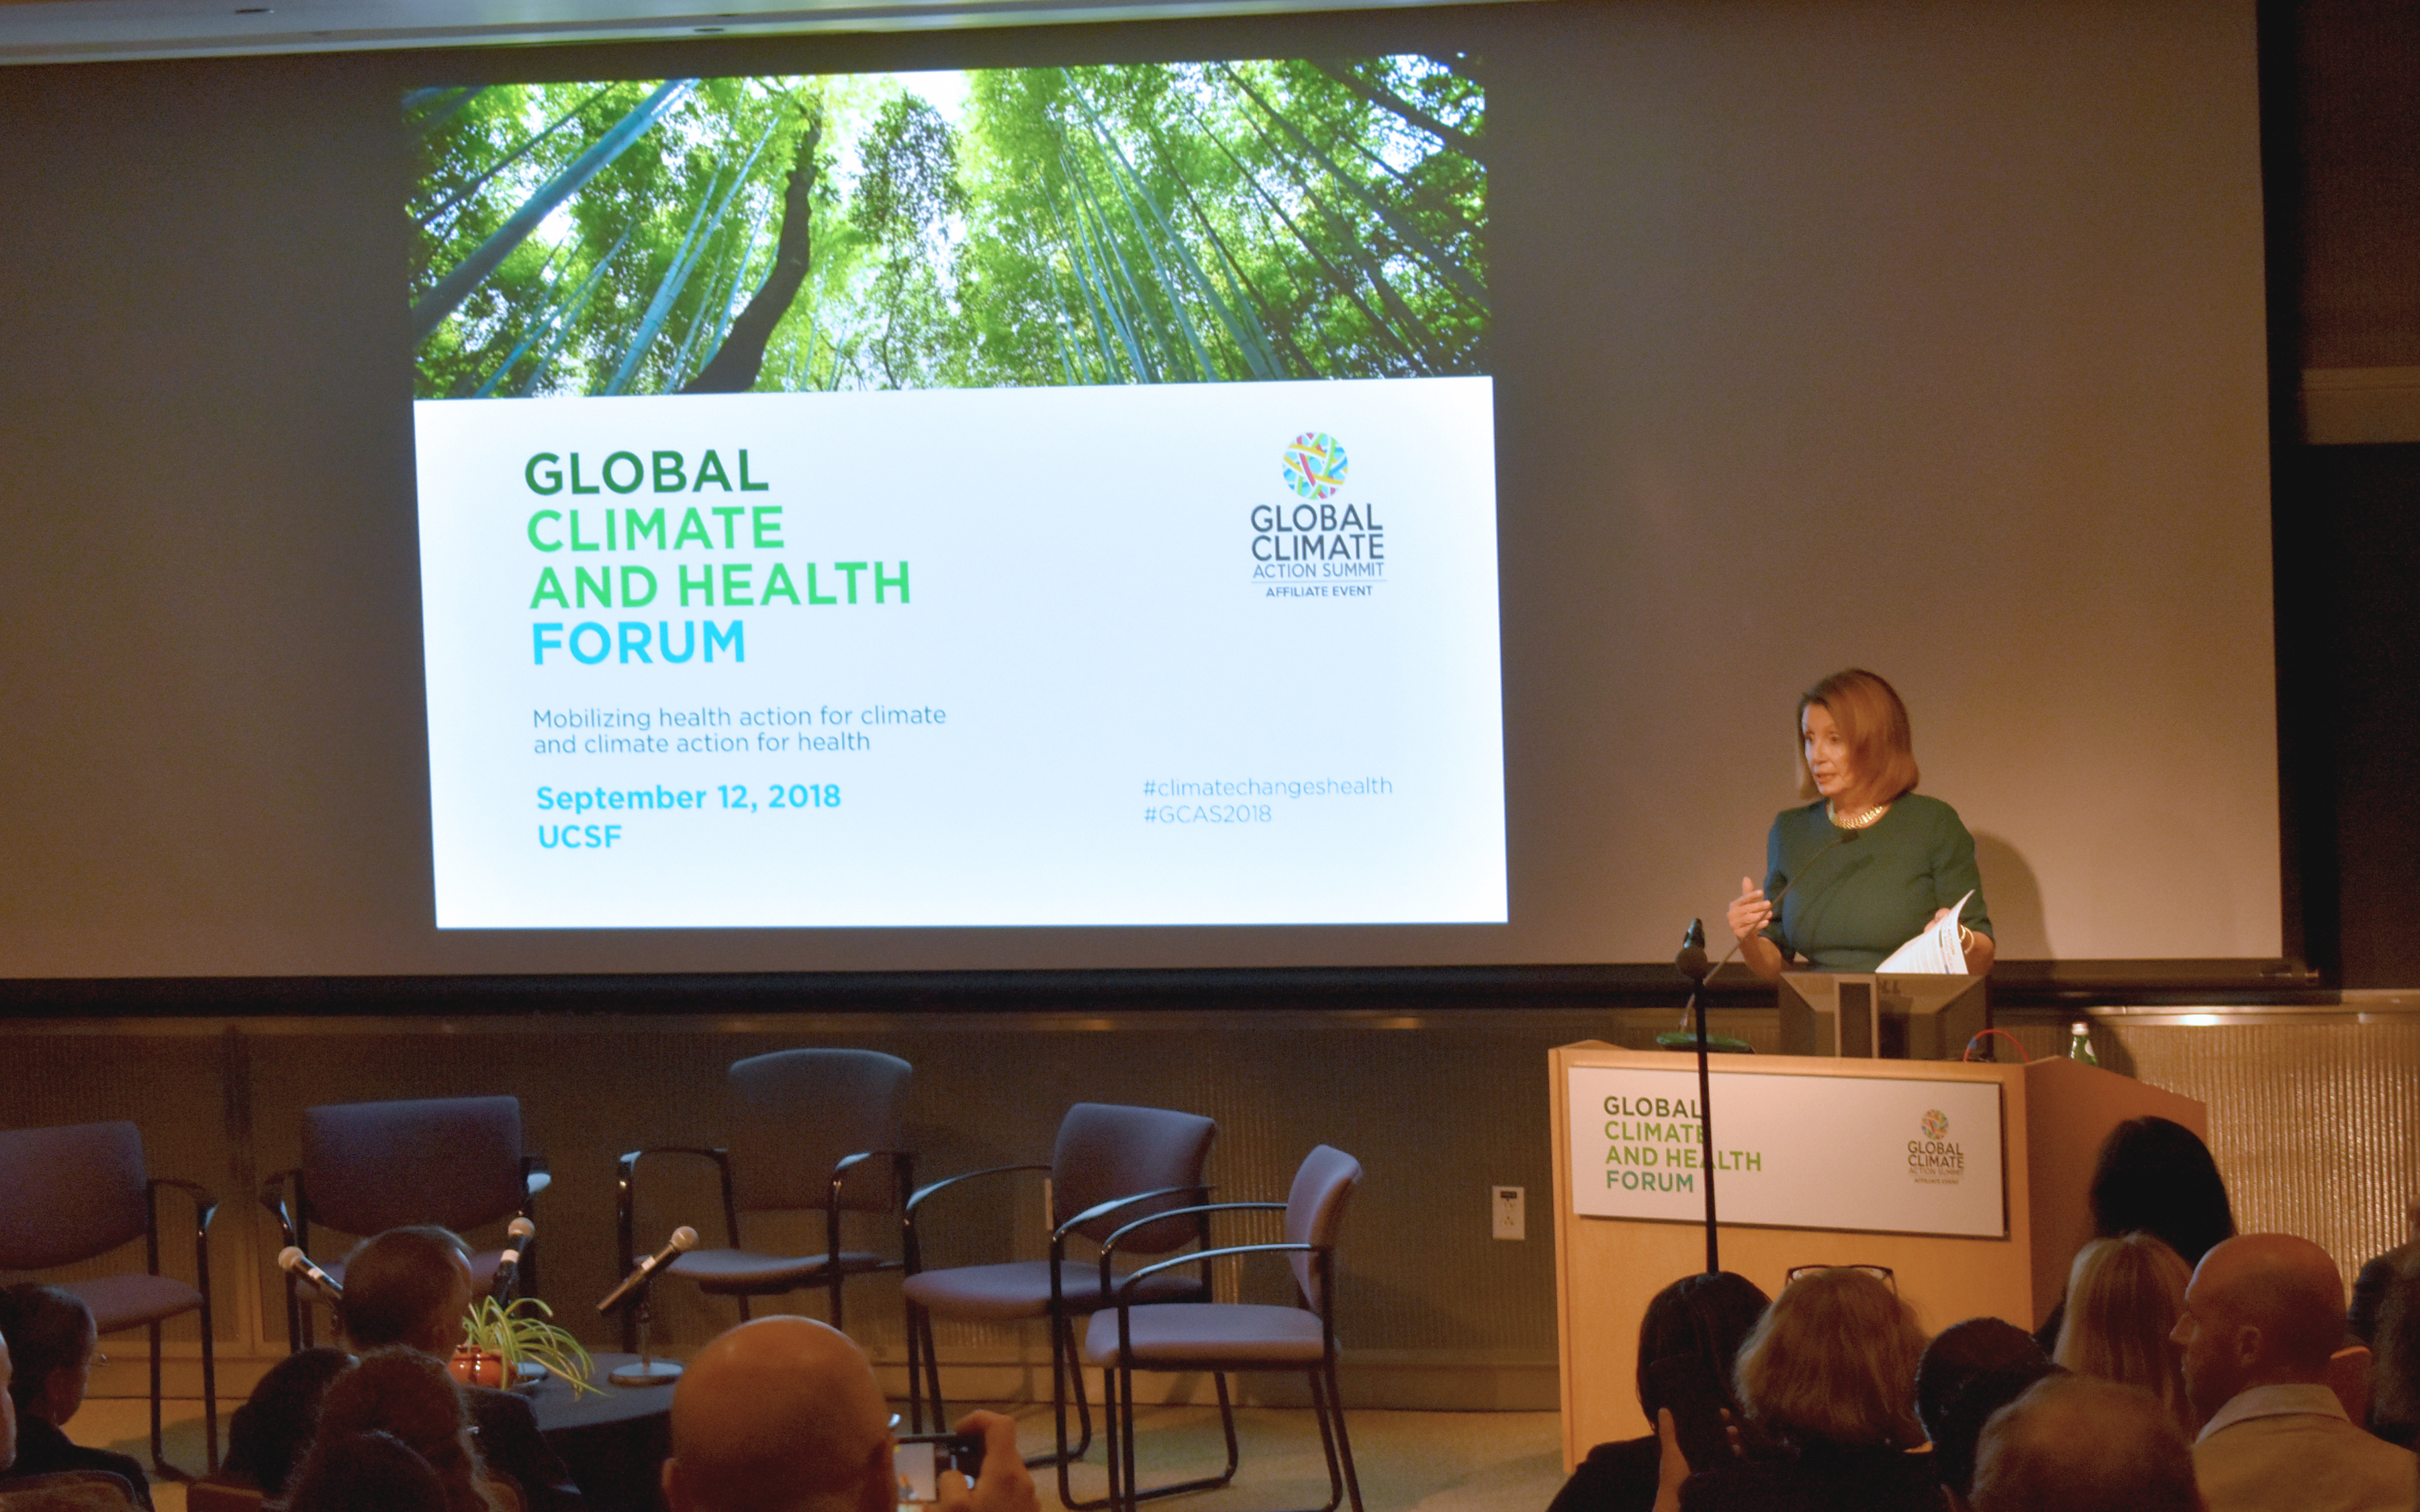 Nancy Pelosi, Democratic leader of the US House of Representatives at the Global Climate and Health Forum